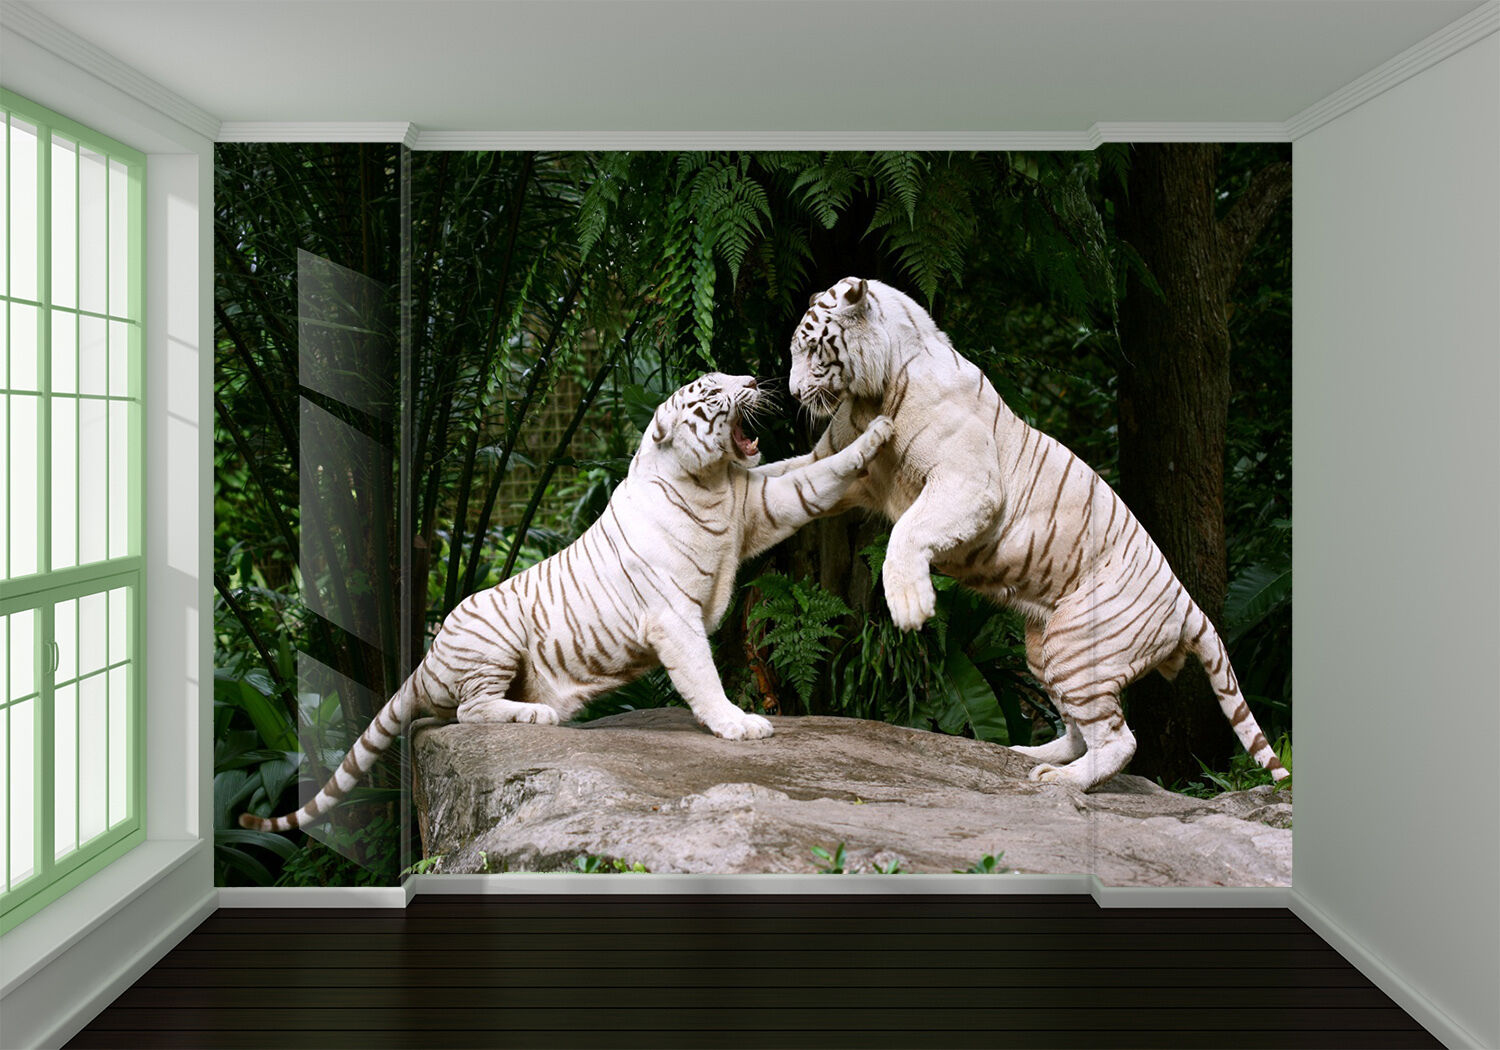 3D Store Weiß Tiger 994 Wall Paper wall Print Decal Wall Deco Indoor wall Mural